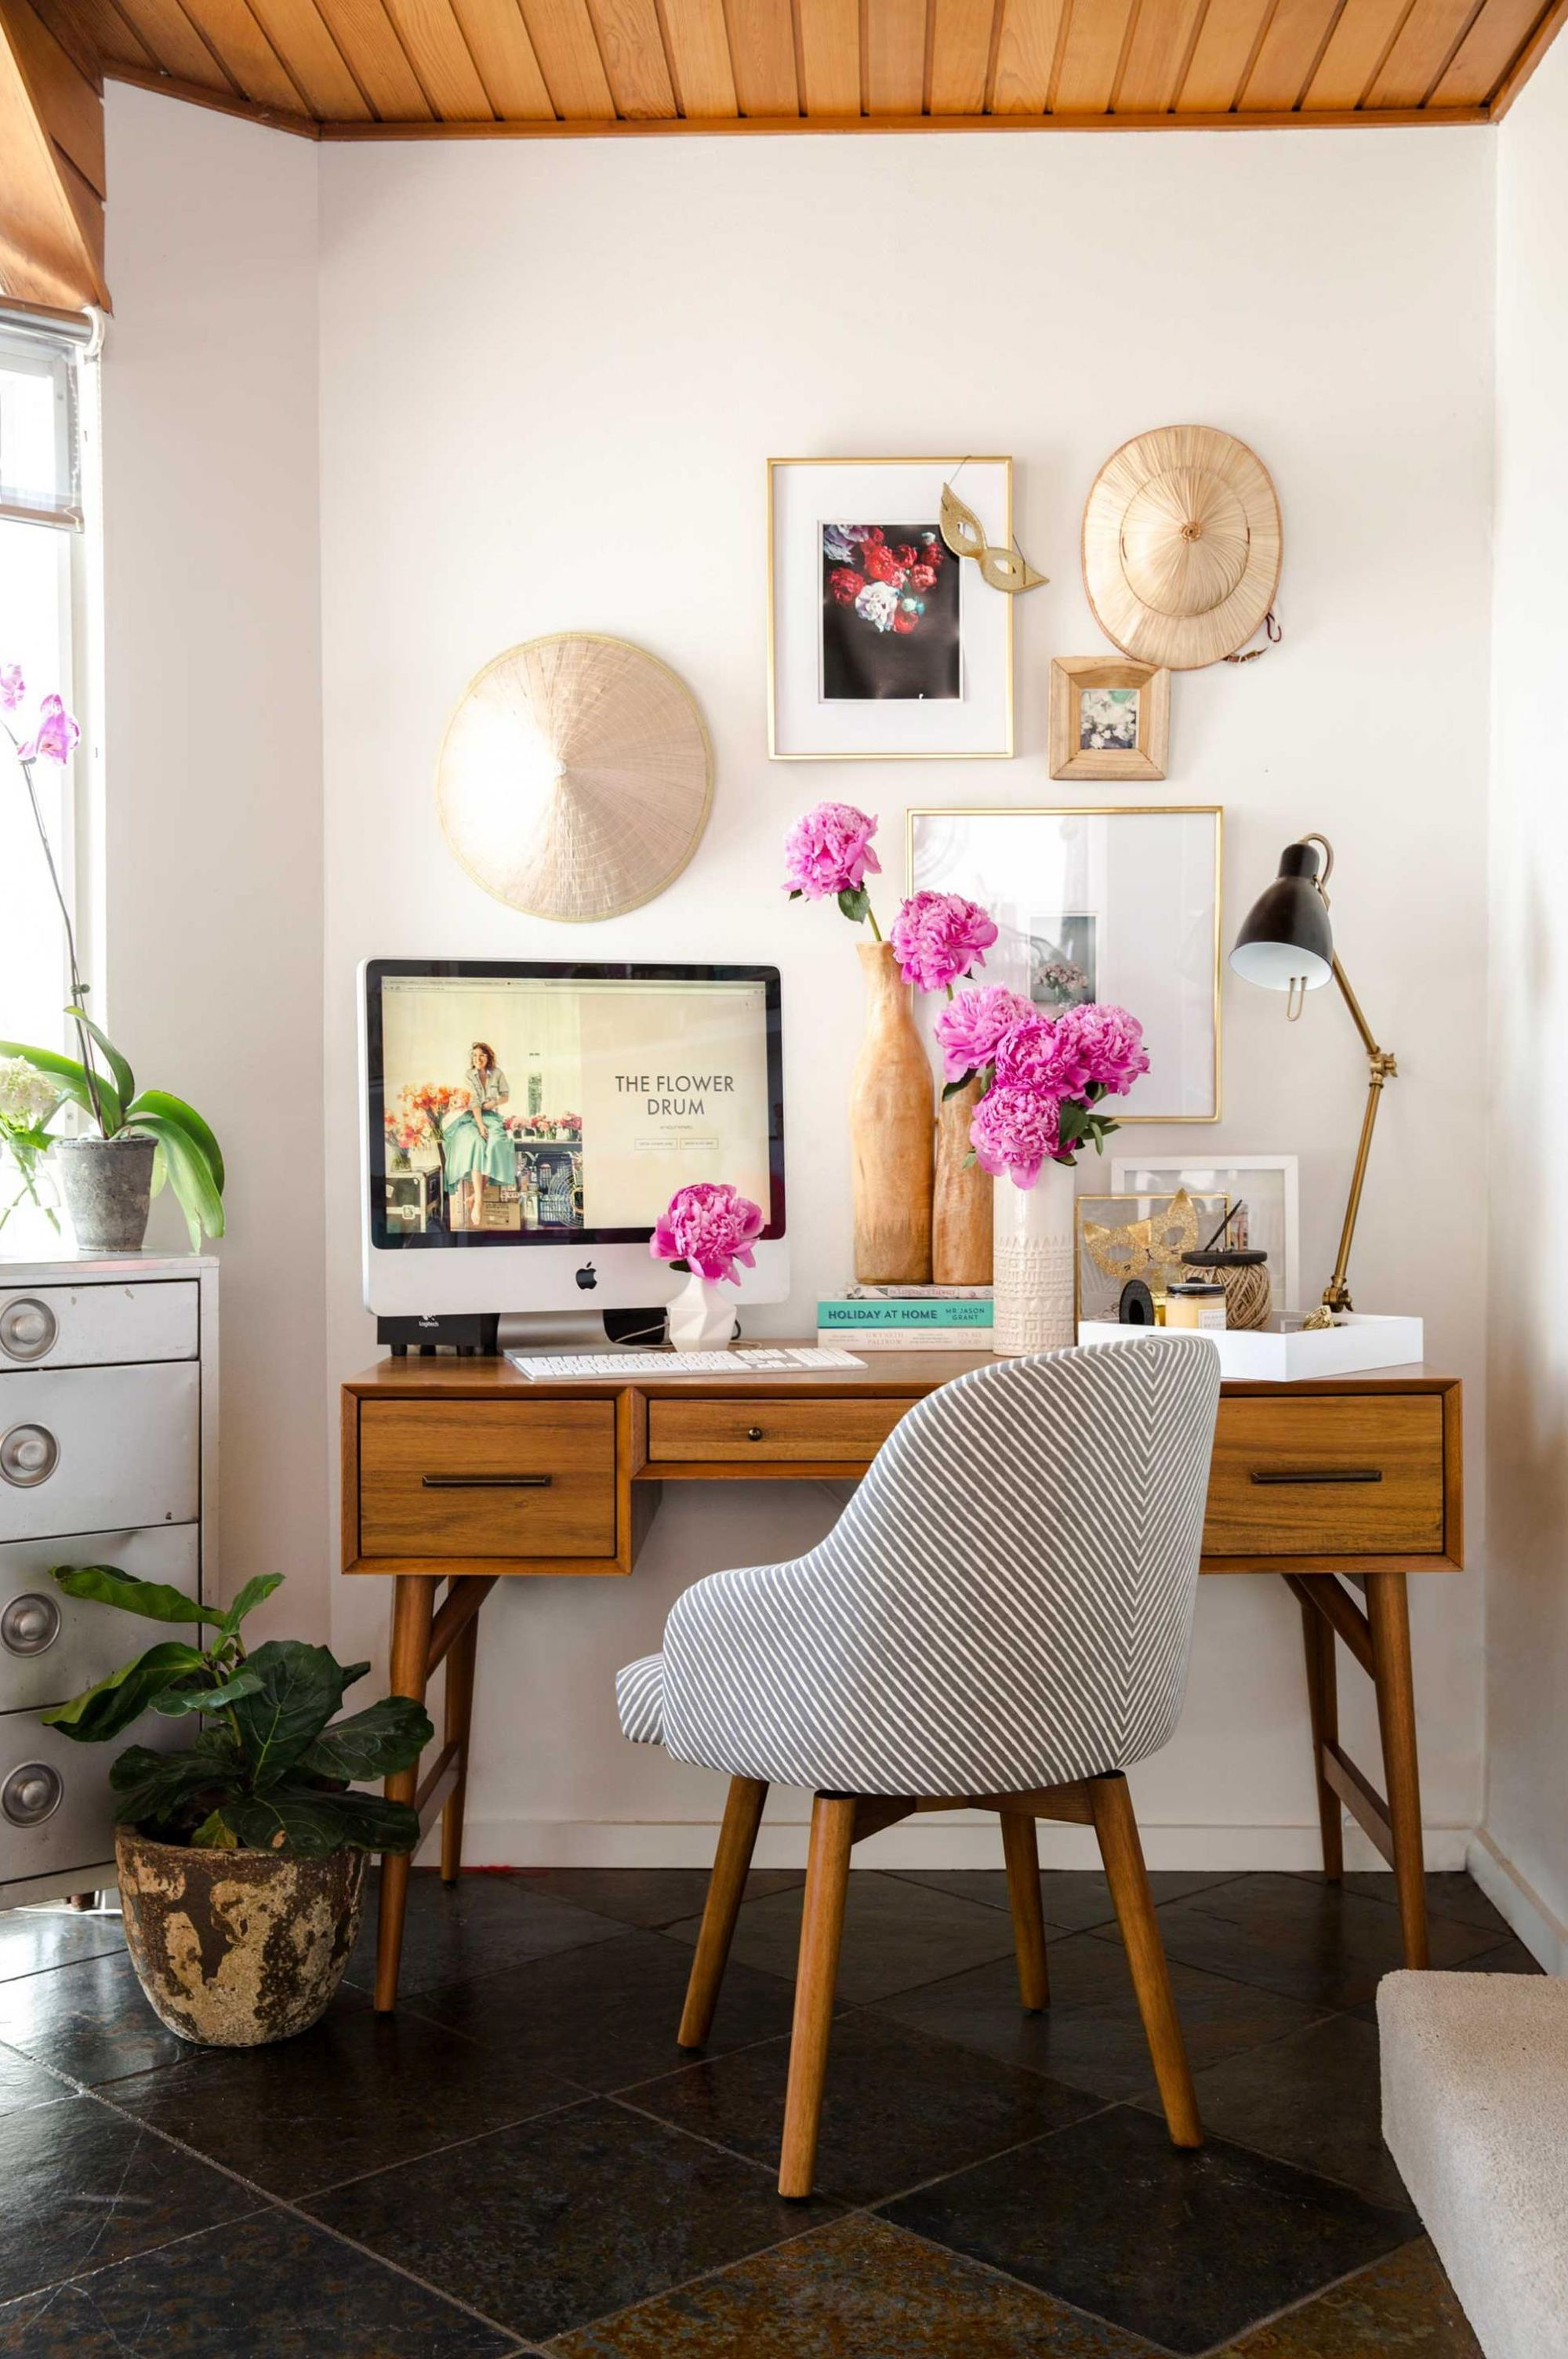 Pin By Lani On Interiors In 2018 Pinterest Home Office Home